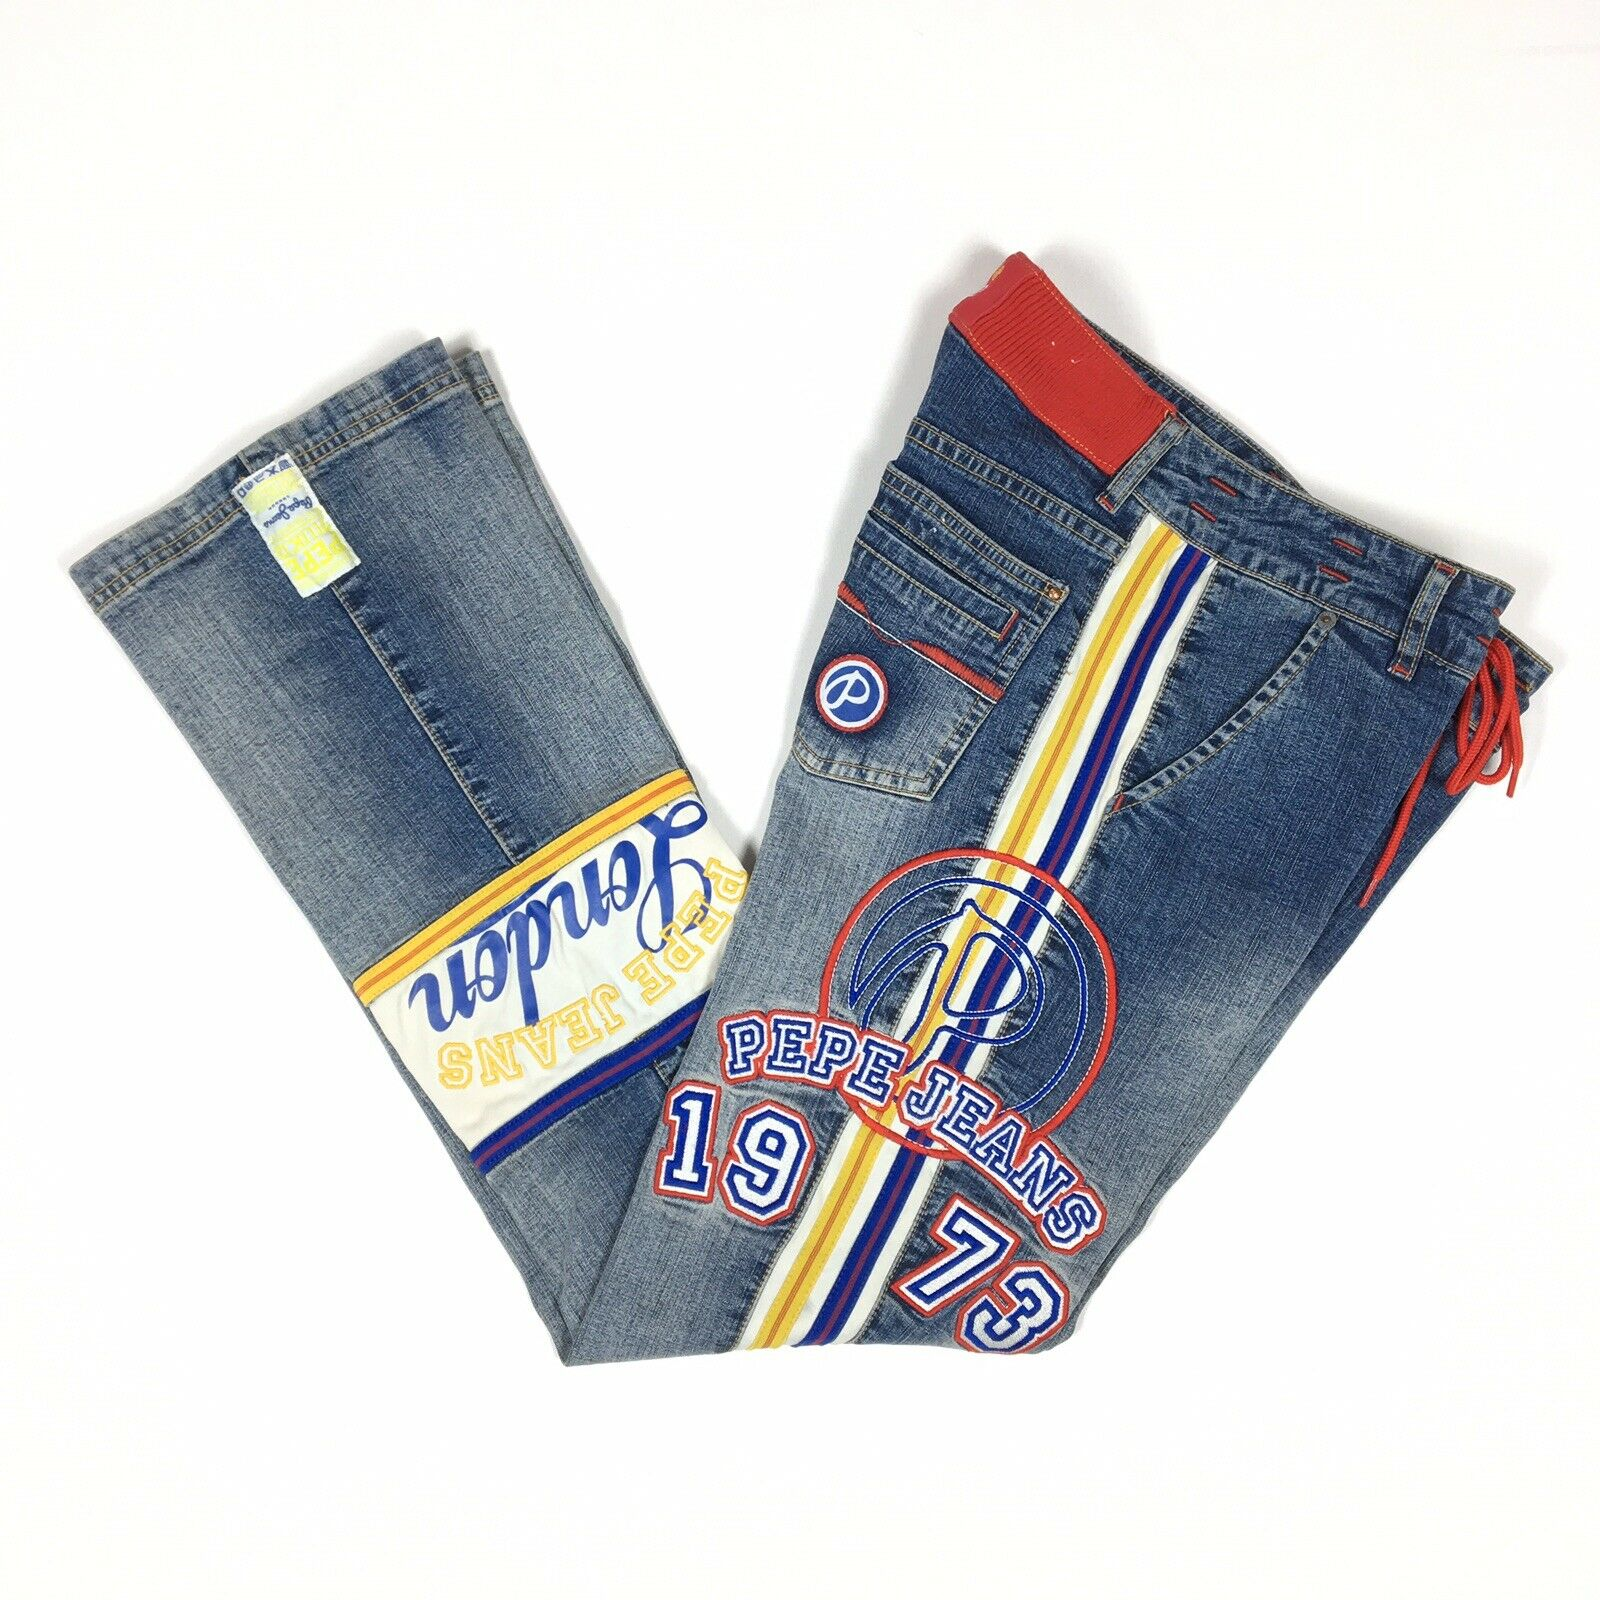 Pepe Jeans London Women's Denim Size 30 x 33 Embroidered Vintage Hip Hop RARE